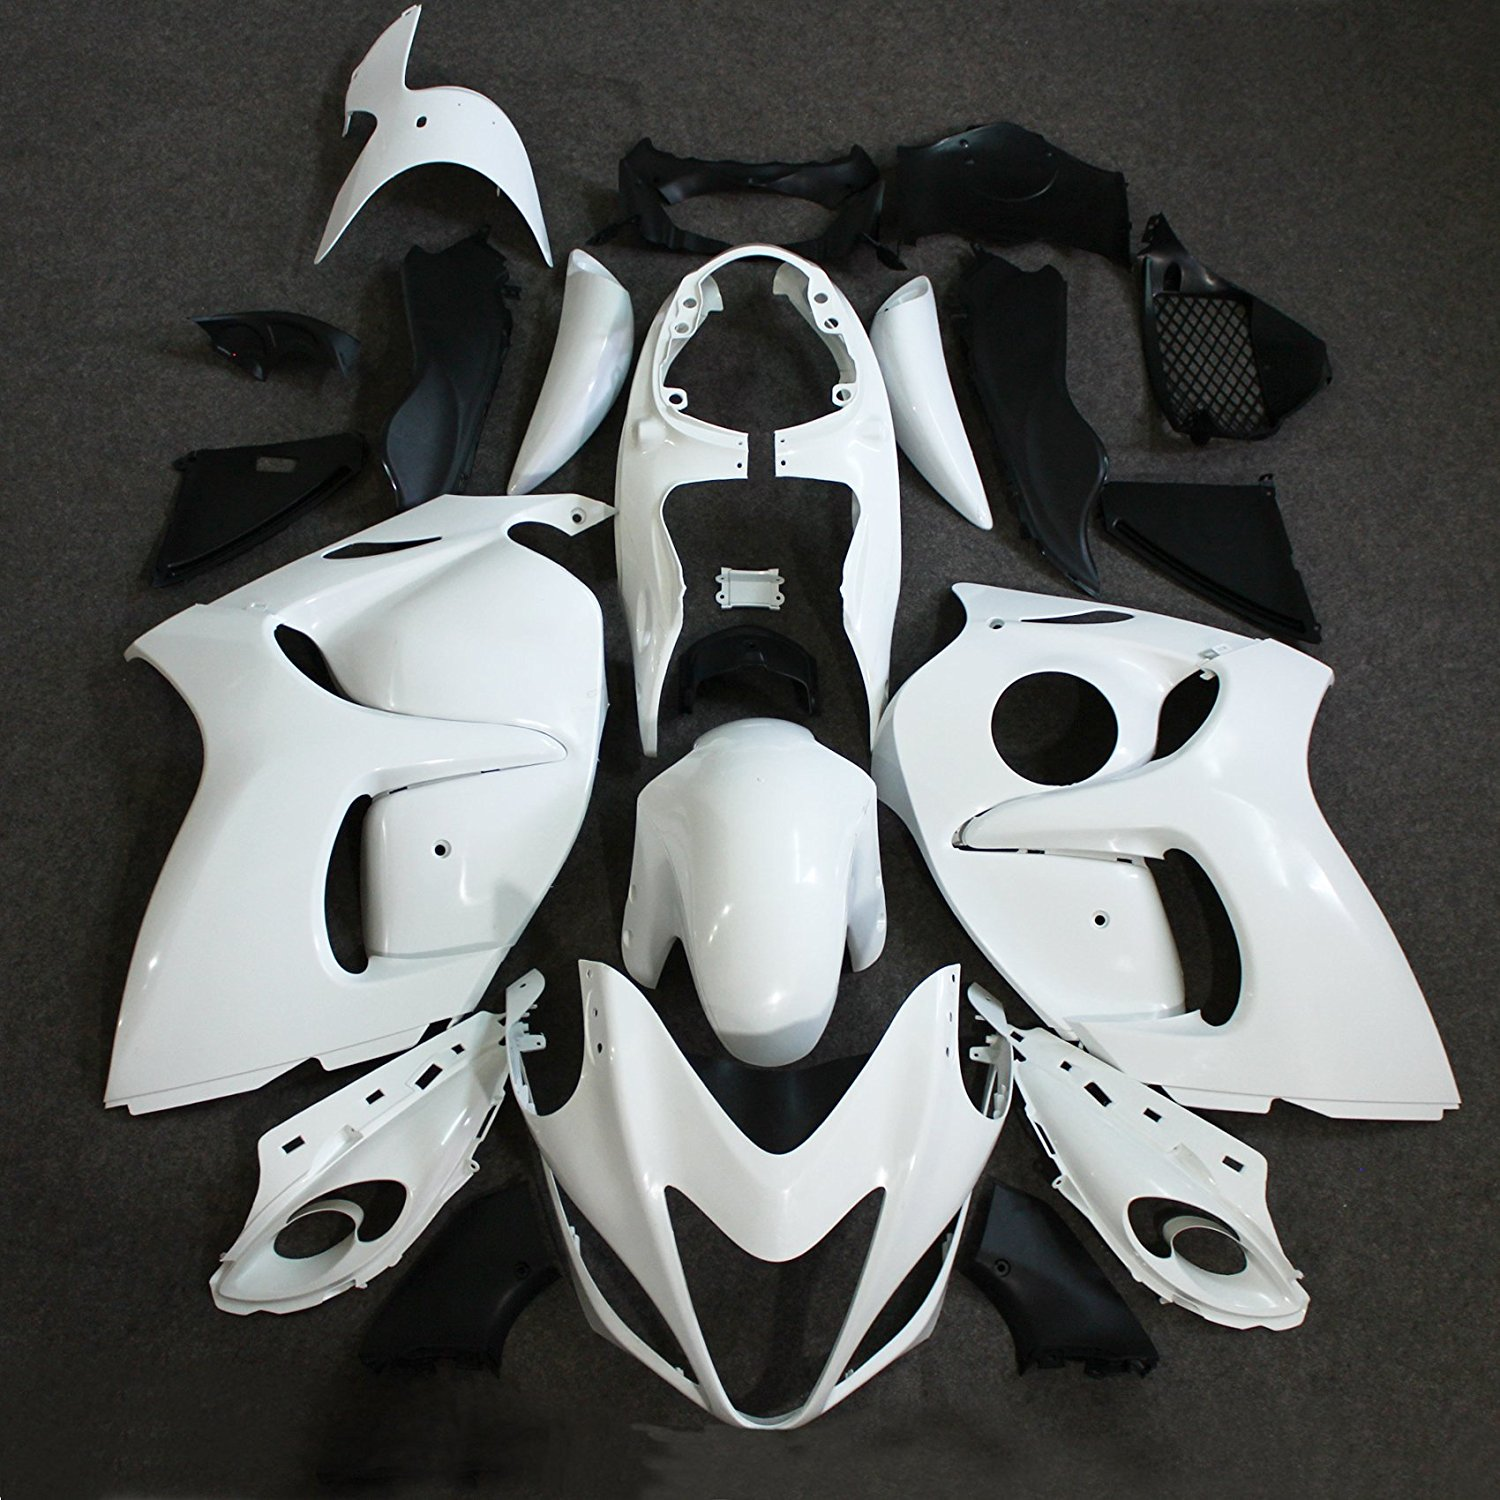 ABS Injection Molding Fairing Kit For Suzuki Hayabusa GSXR1300 GSX R1300 2008 2013 09 10 11